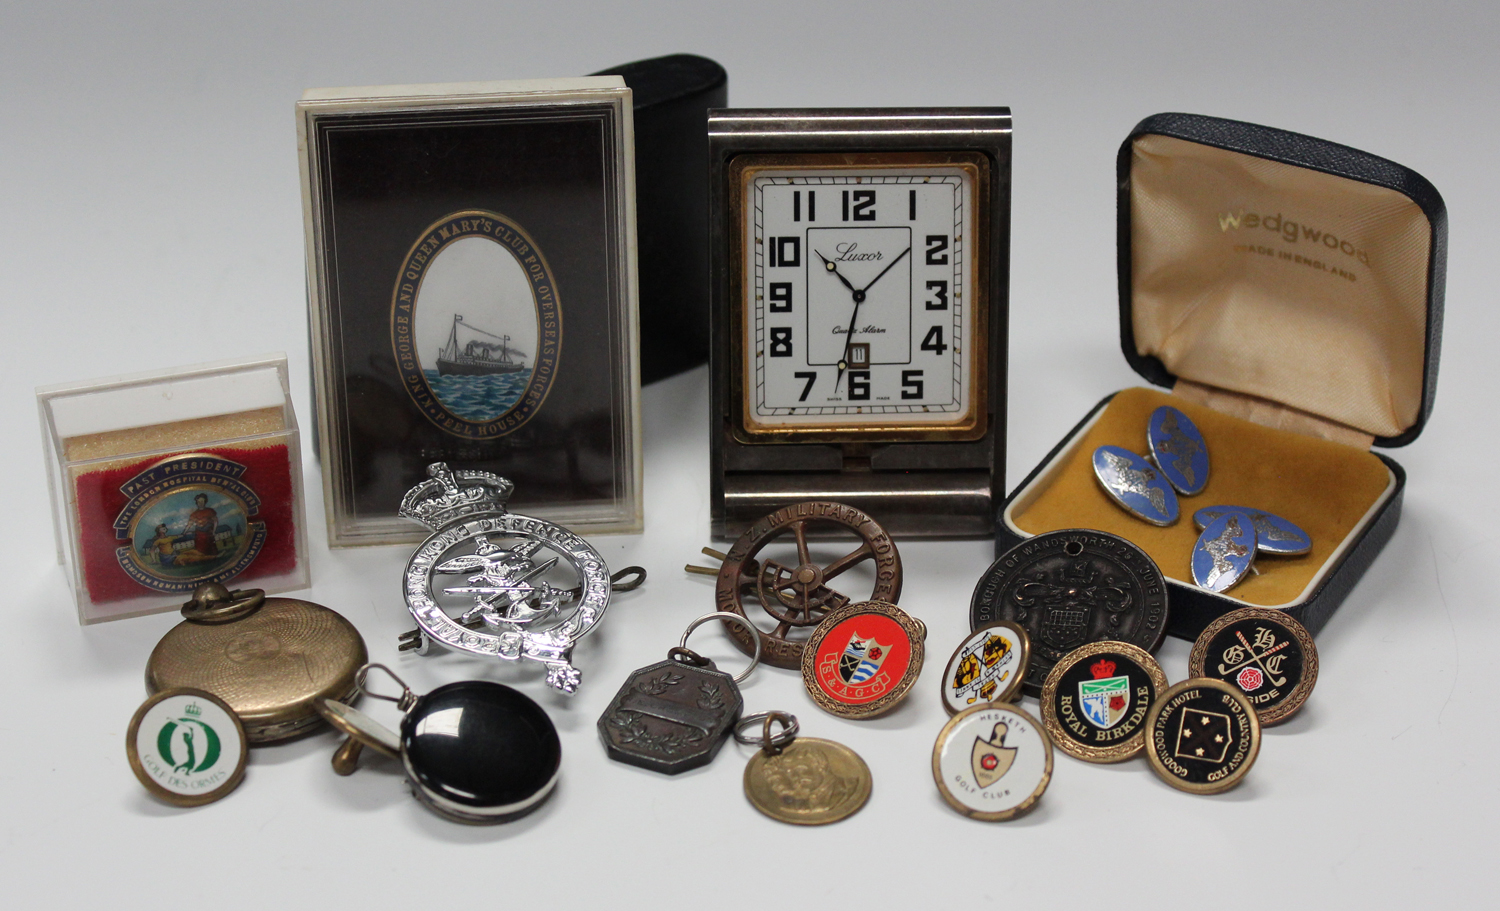 A small group of collectors' items, including a pair of enamelled R.A.F. cufflinks, a 'Peel House